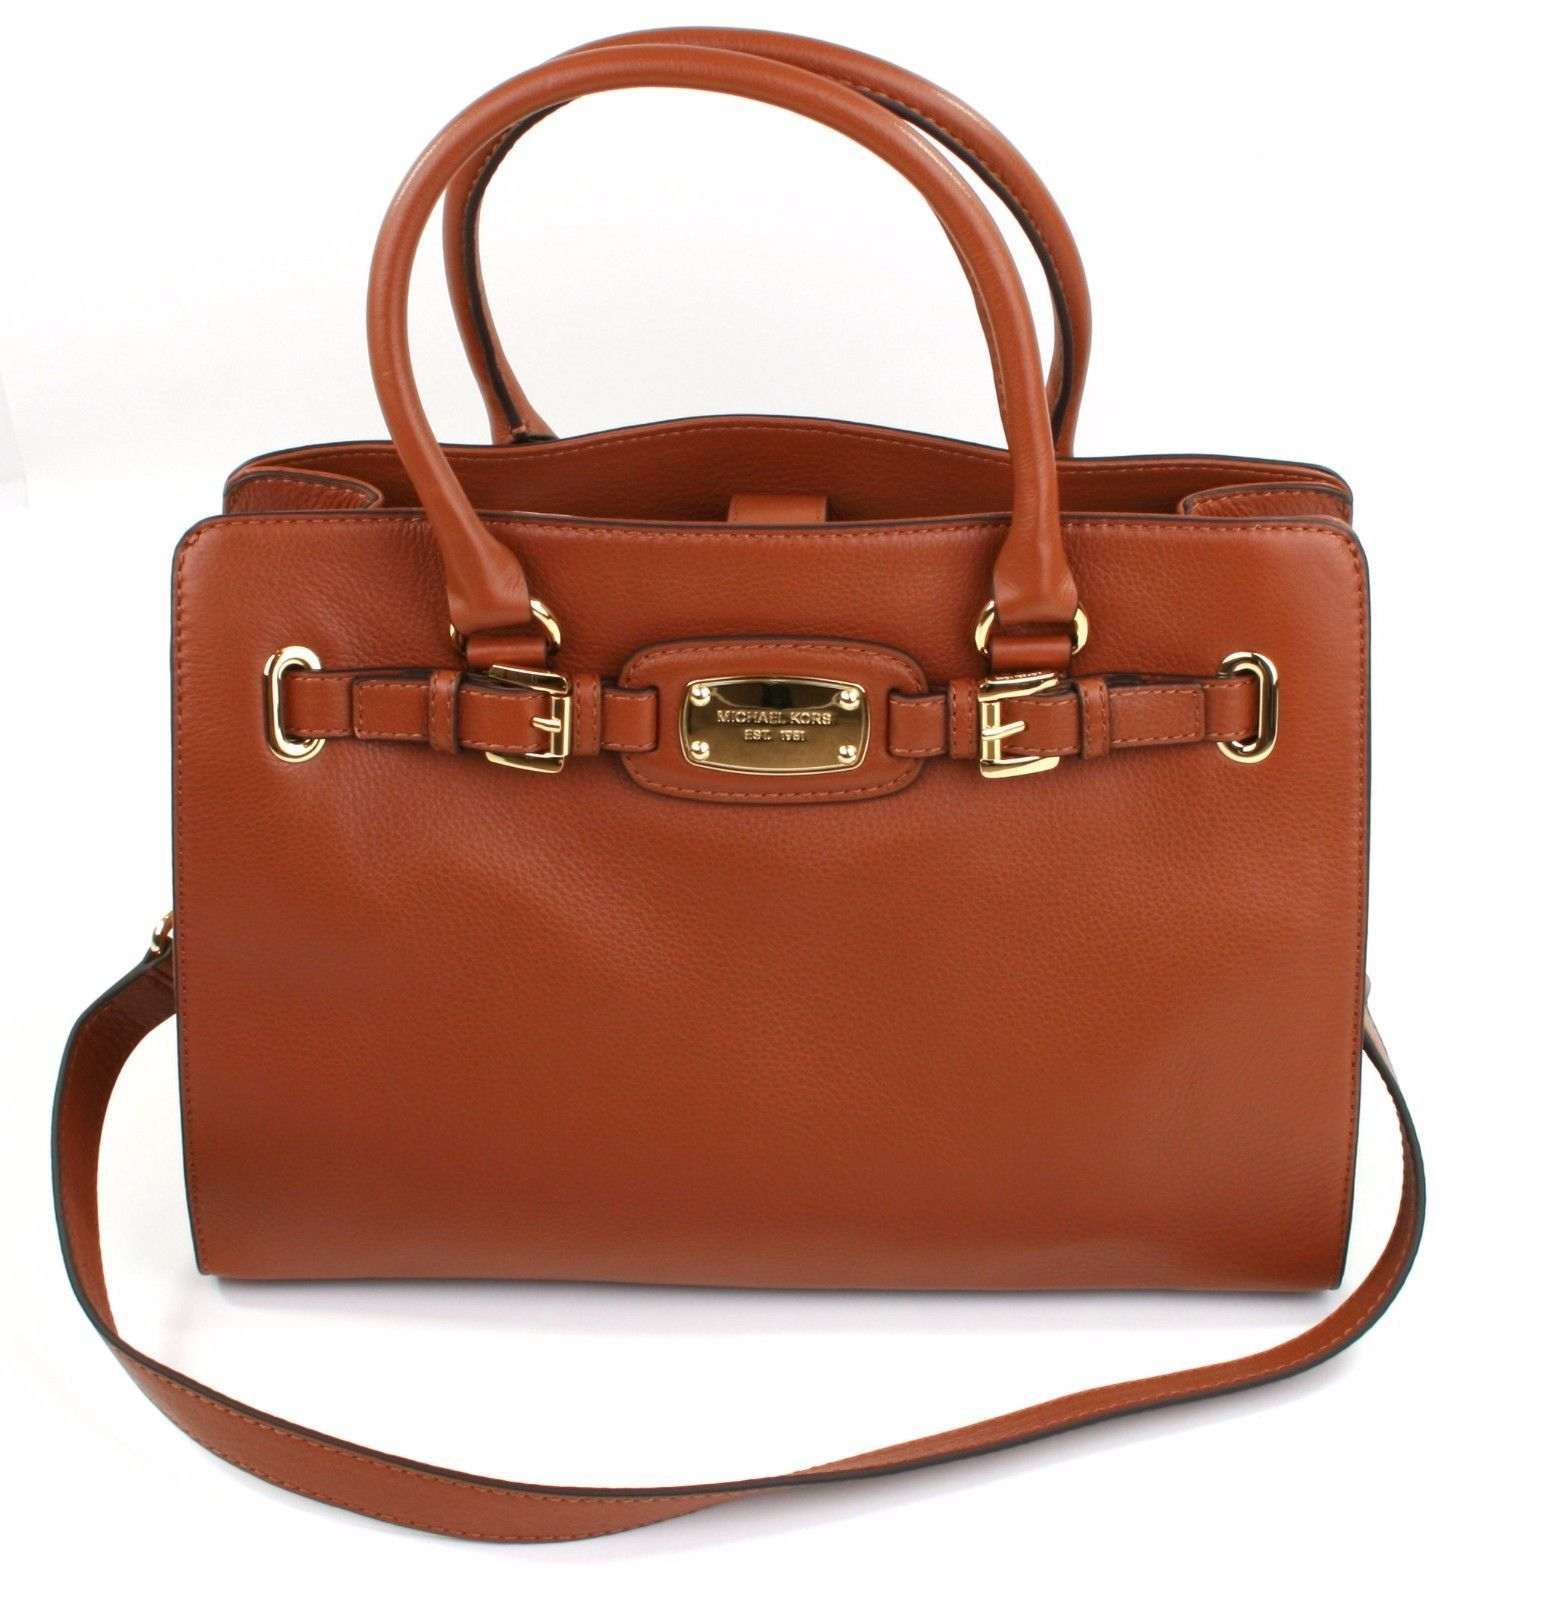 5262465bbb1e 57. 57. Previous. Michael Kors Hamilton Tan Brown Leather Tote Tech Bag  Large Handbag · Michael Kors ...